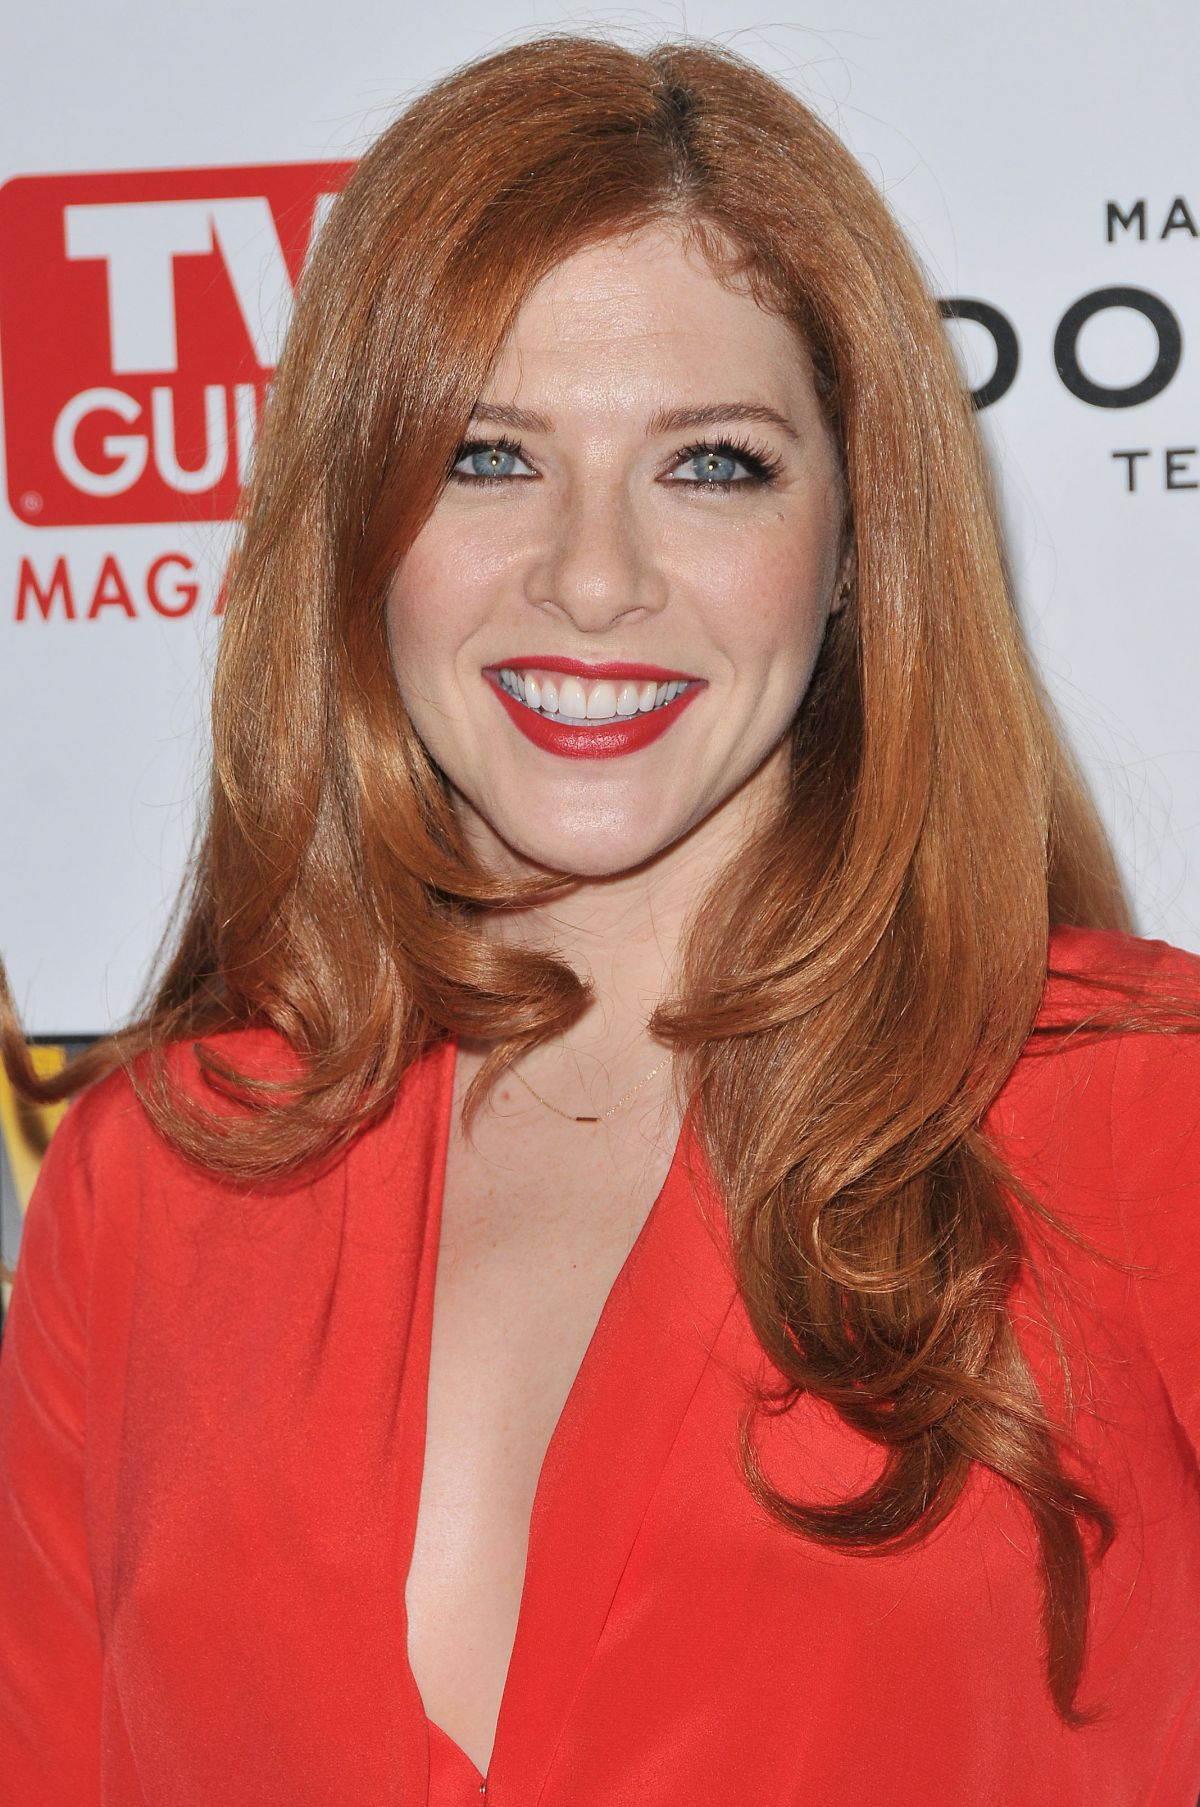 RACHELLE LEFEVRE at Television Industry Advocacy Awards Gala in Los Angeles 09/18/2015